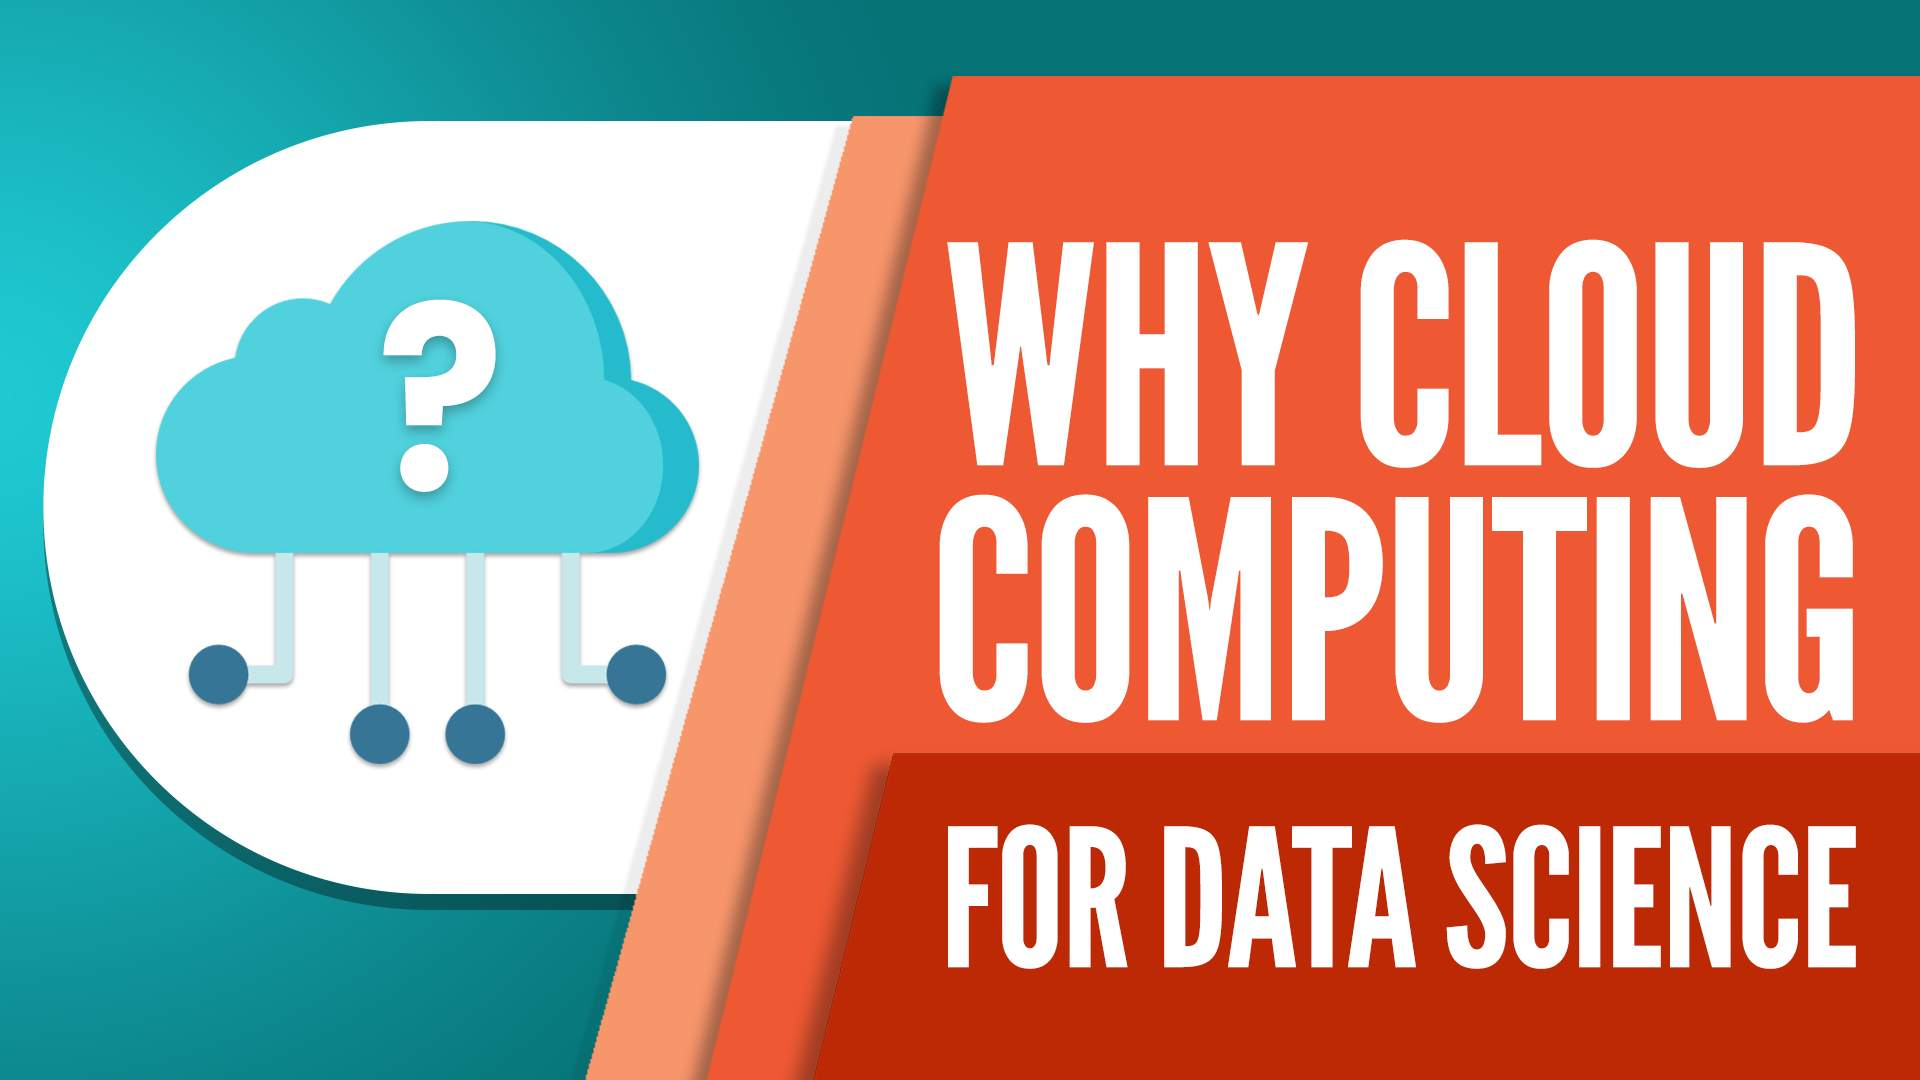 cloud computing, why cloud computing is critical for a data scientist, cloud computing and data science, cloud computing for data science